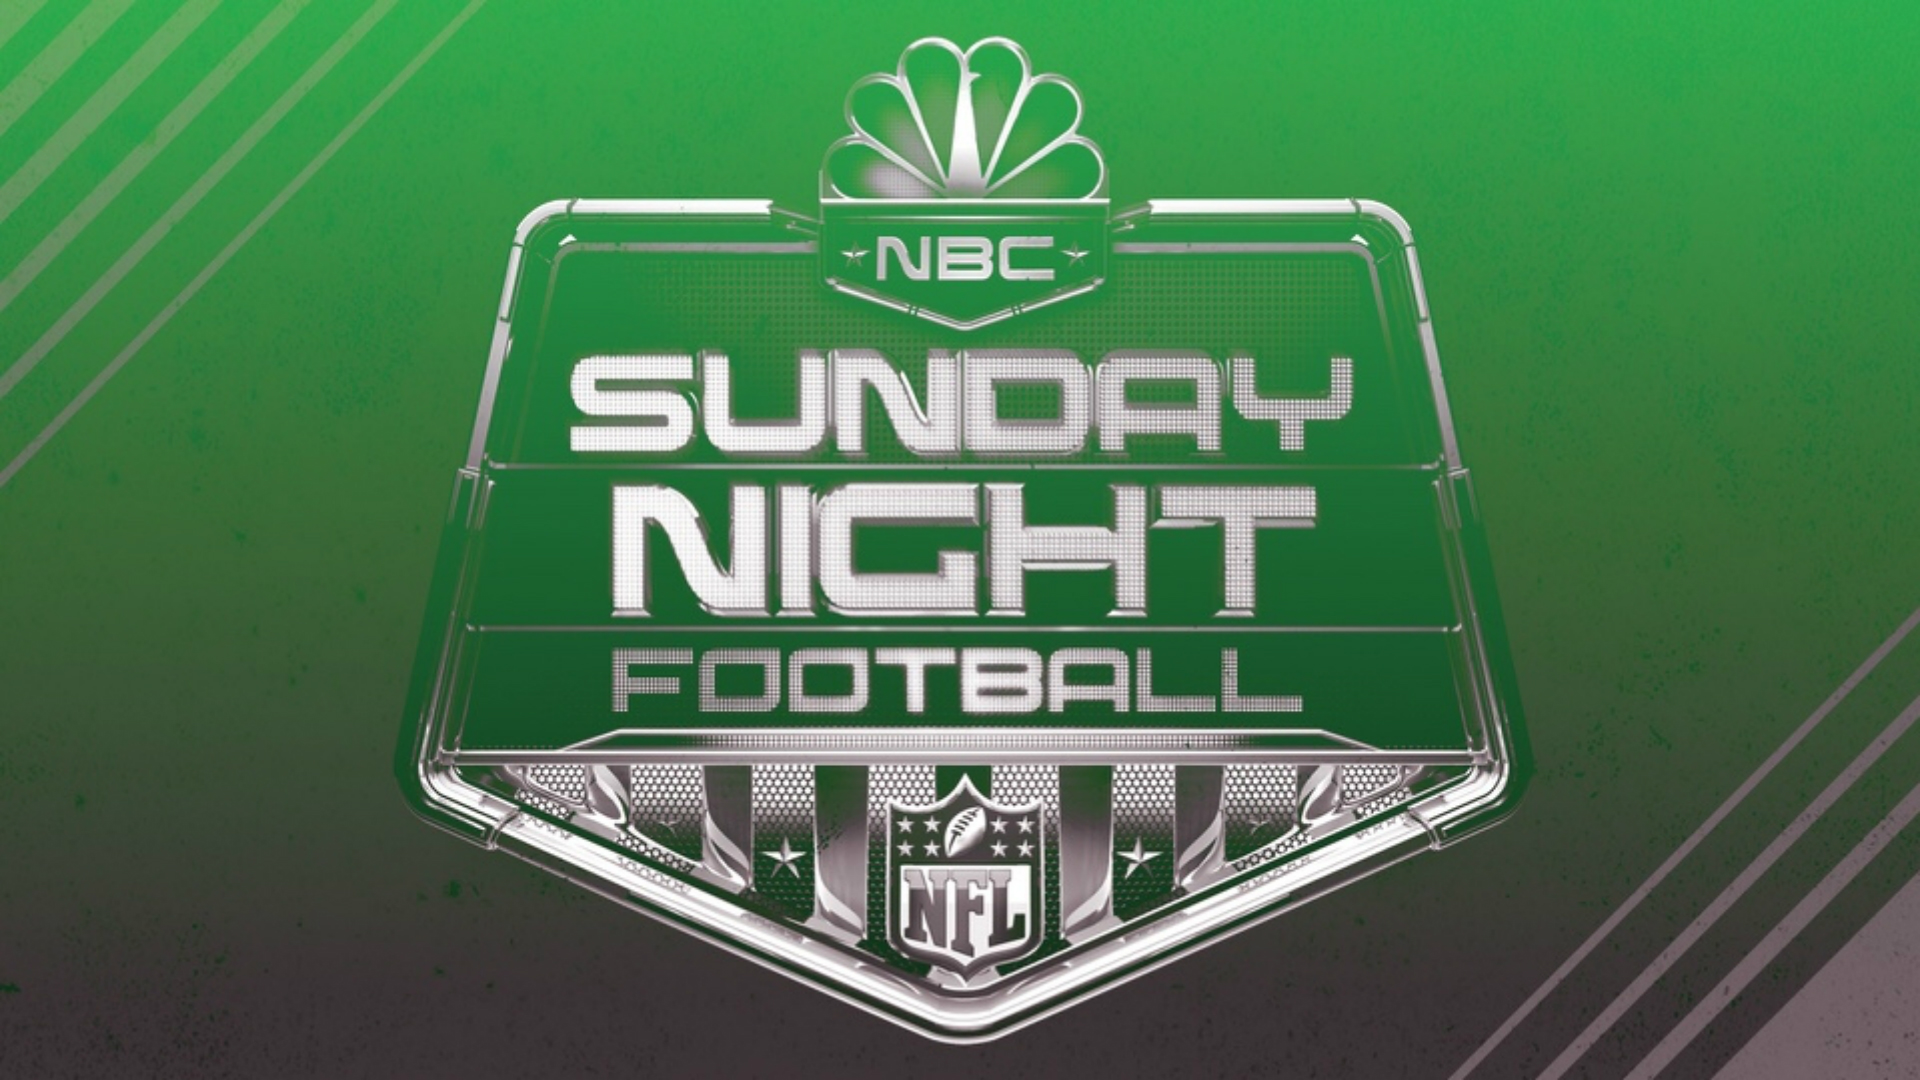 photo relating to Nfl Week 13 Printable Schedule referred to as NFL agenda 2019: Monday, Sunday, Thursday night time game titles